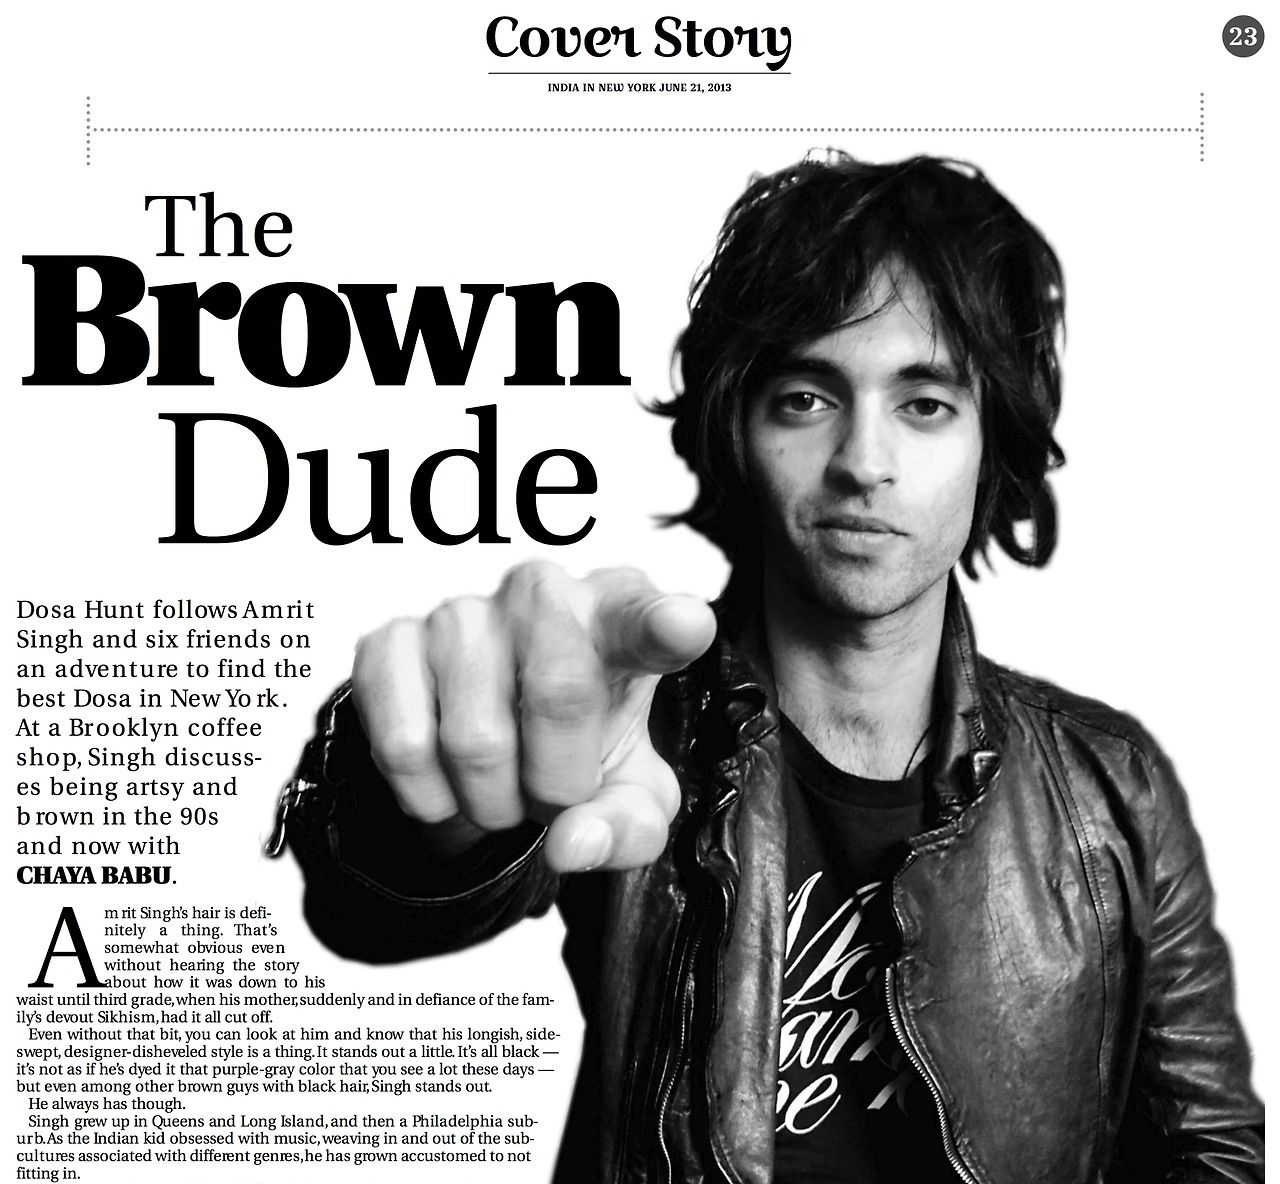 See my own story in The Huffington Post: With Dosa Hunt, Filmmaker Amrit Singh Emerges as Generational Voice http://jimluce.tumblr.com/post/53599700405/amrit-singh-india-abroad-dosa-hunt